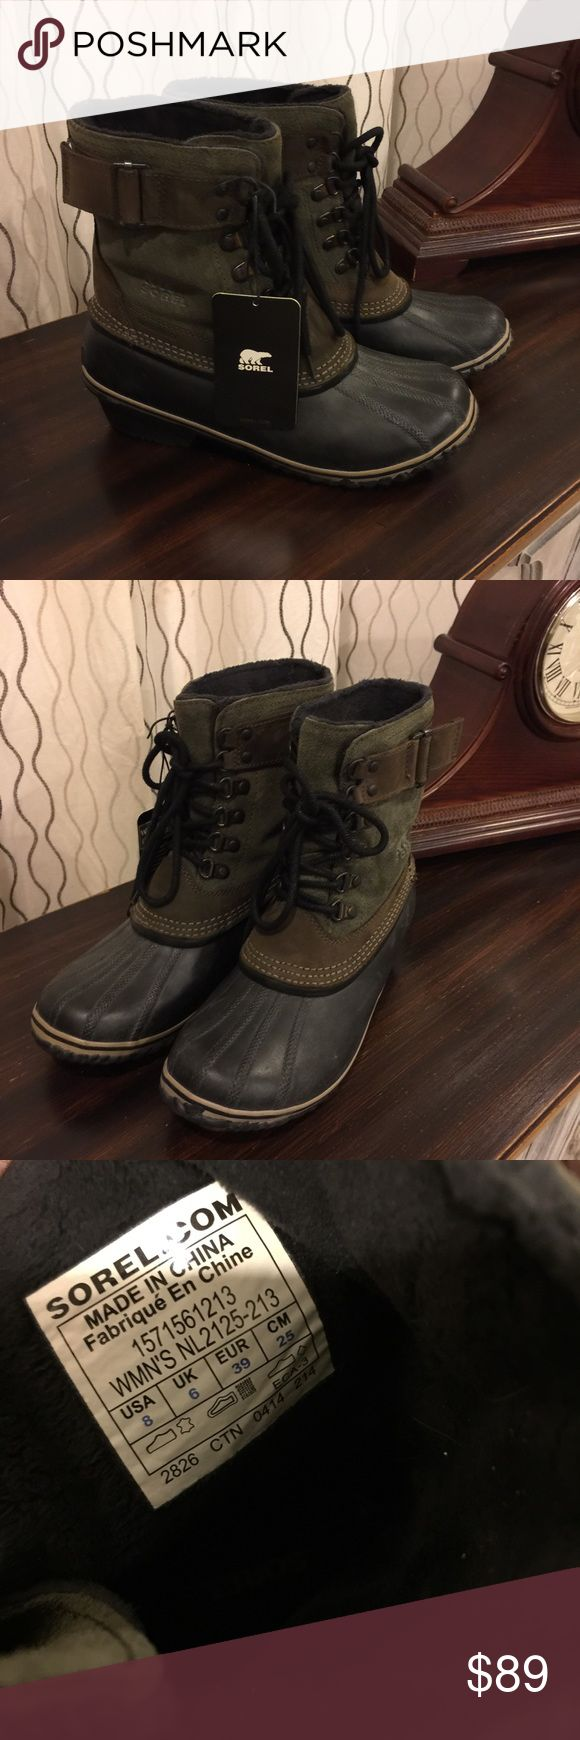 Sorel Fancy Lace ll green size 8 Fits 7 new New with box sorel boots. They run a size small. I wear an 8 but these will fit a size 7. Selling for that reason never worn, smoke free home they have tried on :) Sorel Shoes Winter & Rain Boots